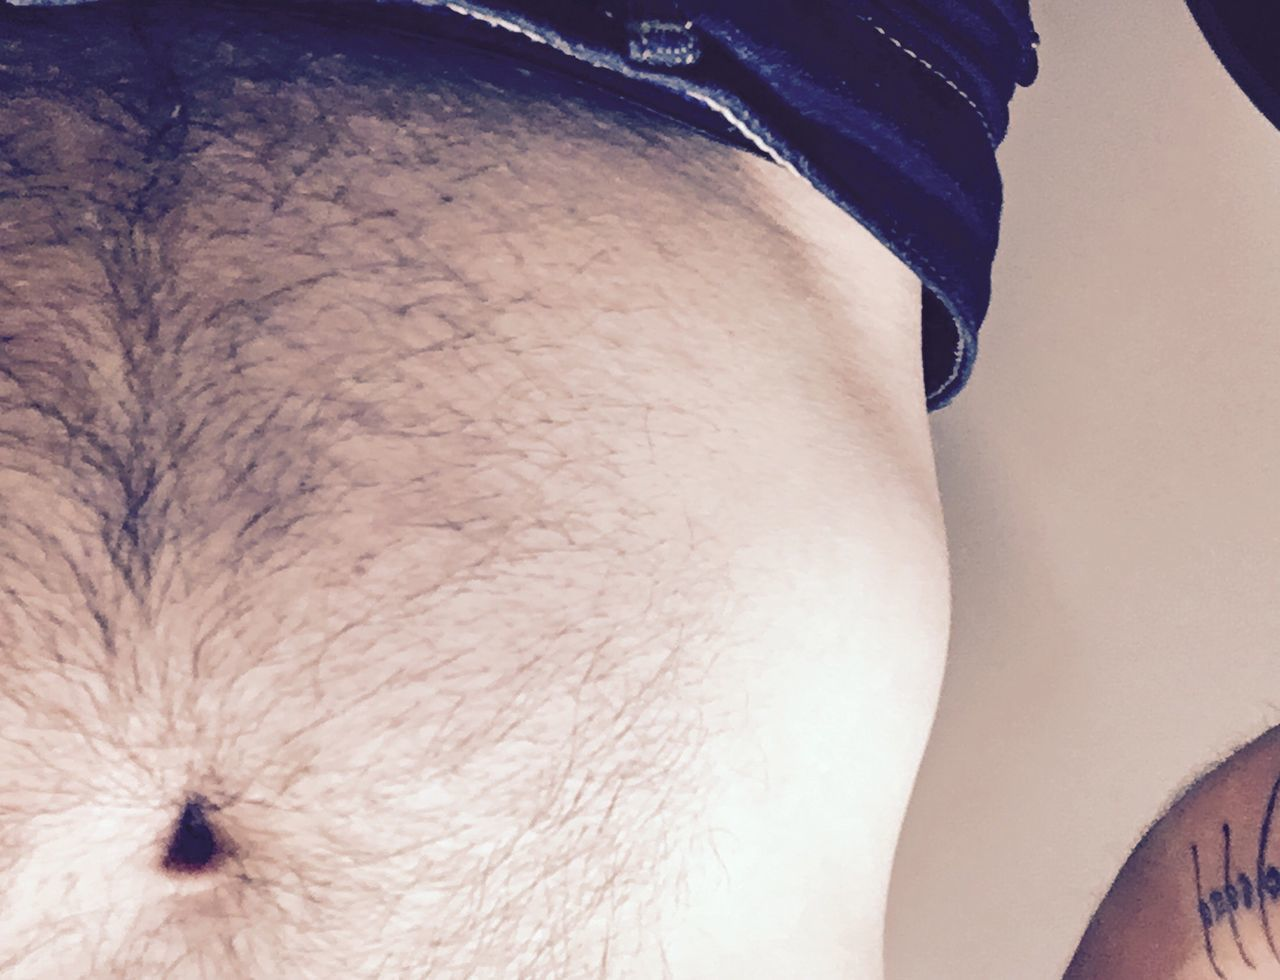 midsection, real people, one person, human skin, human body part, close-up, men, indoors, day, abdomen, people